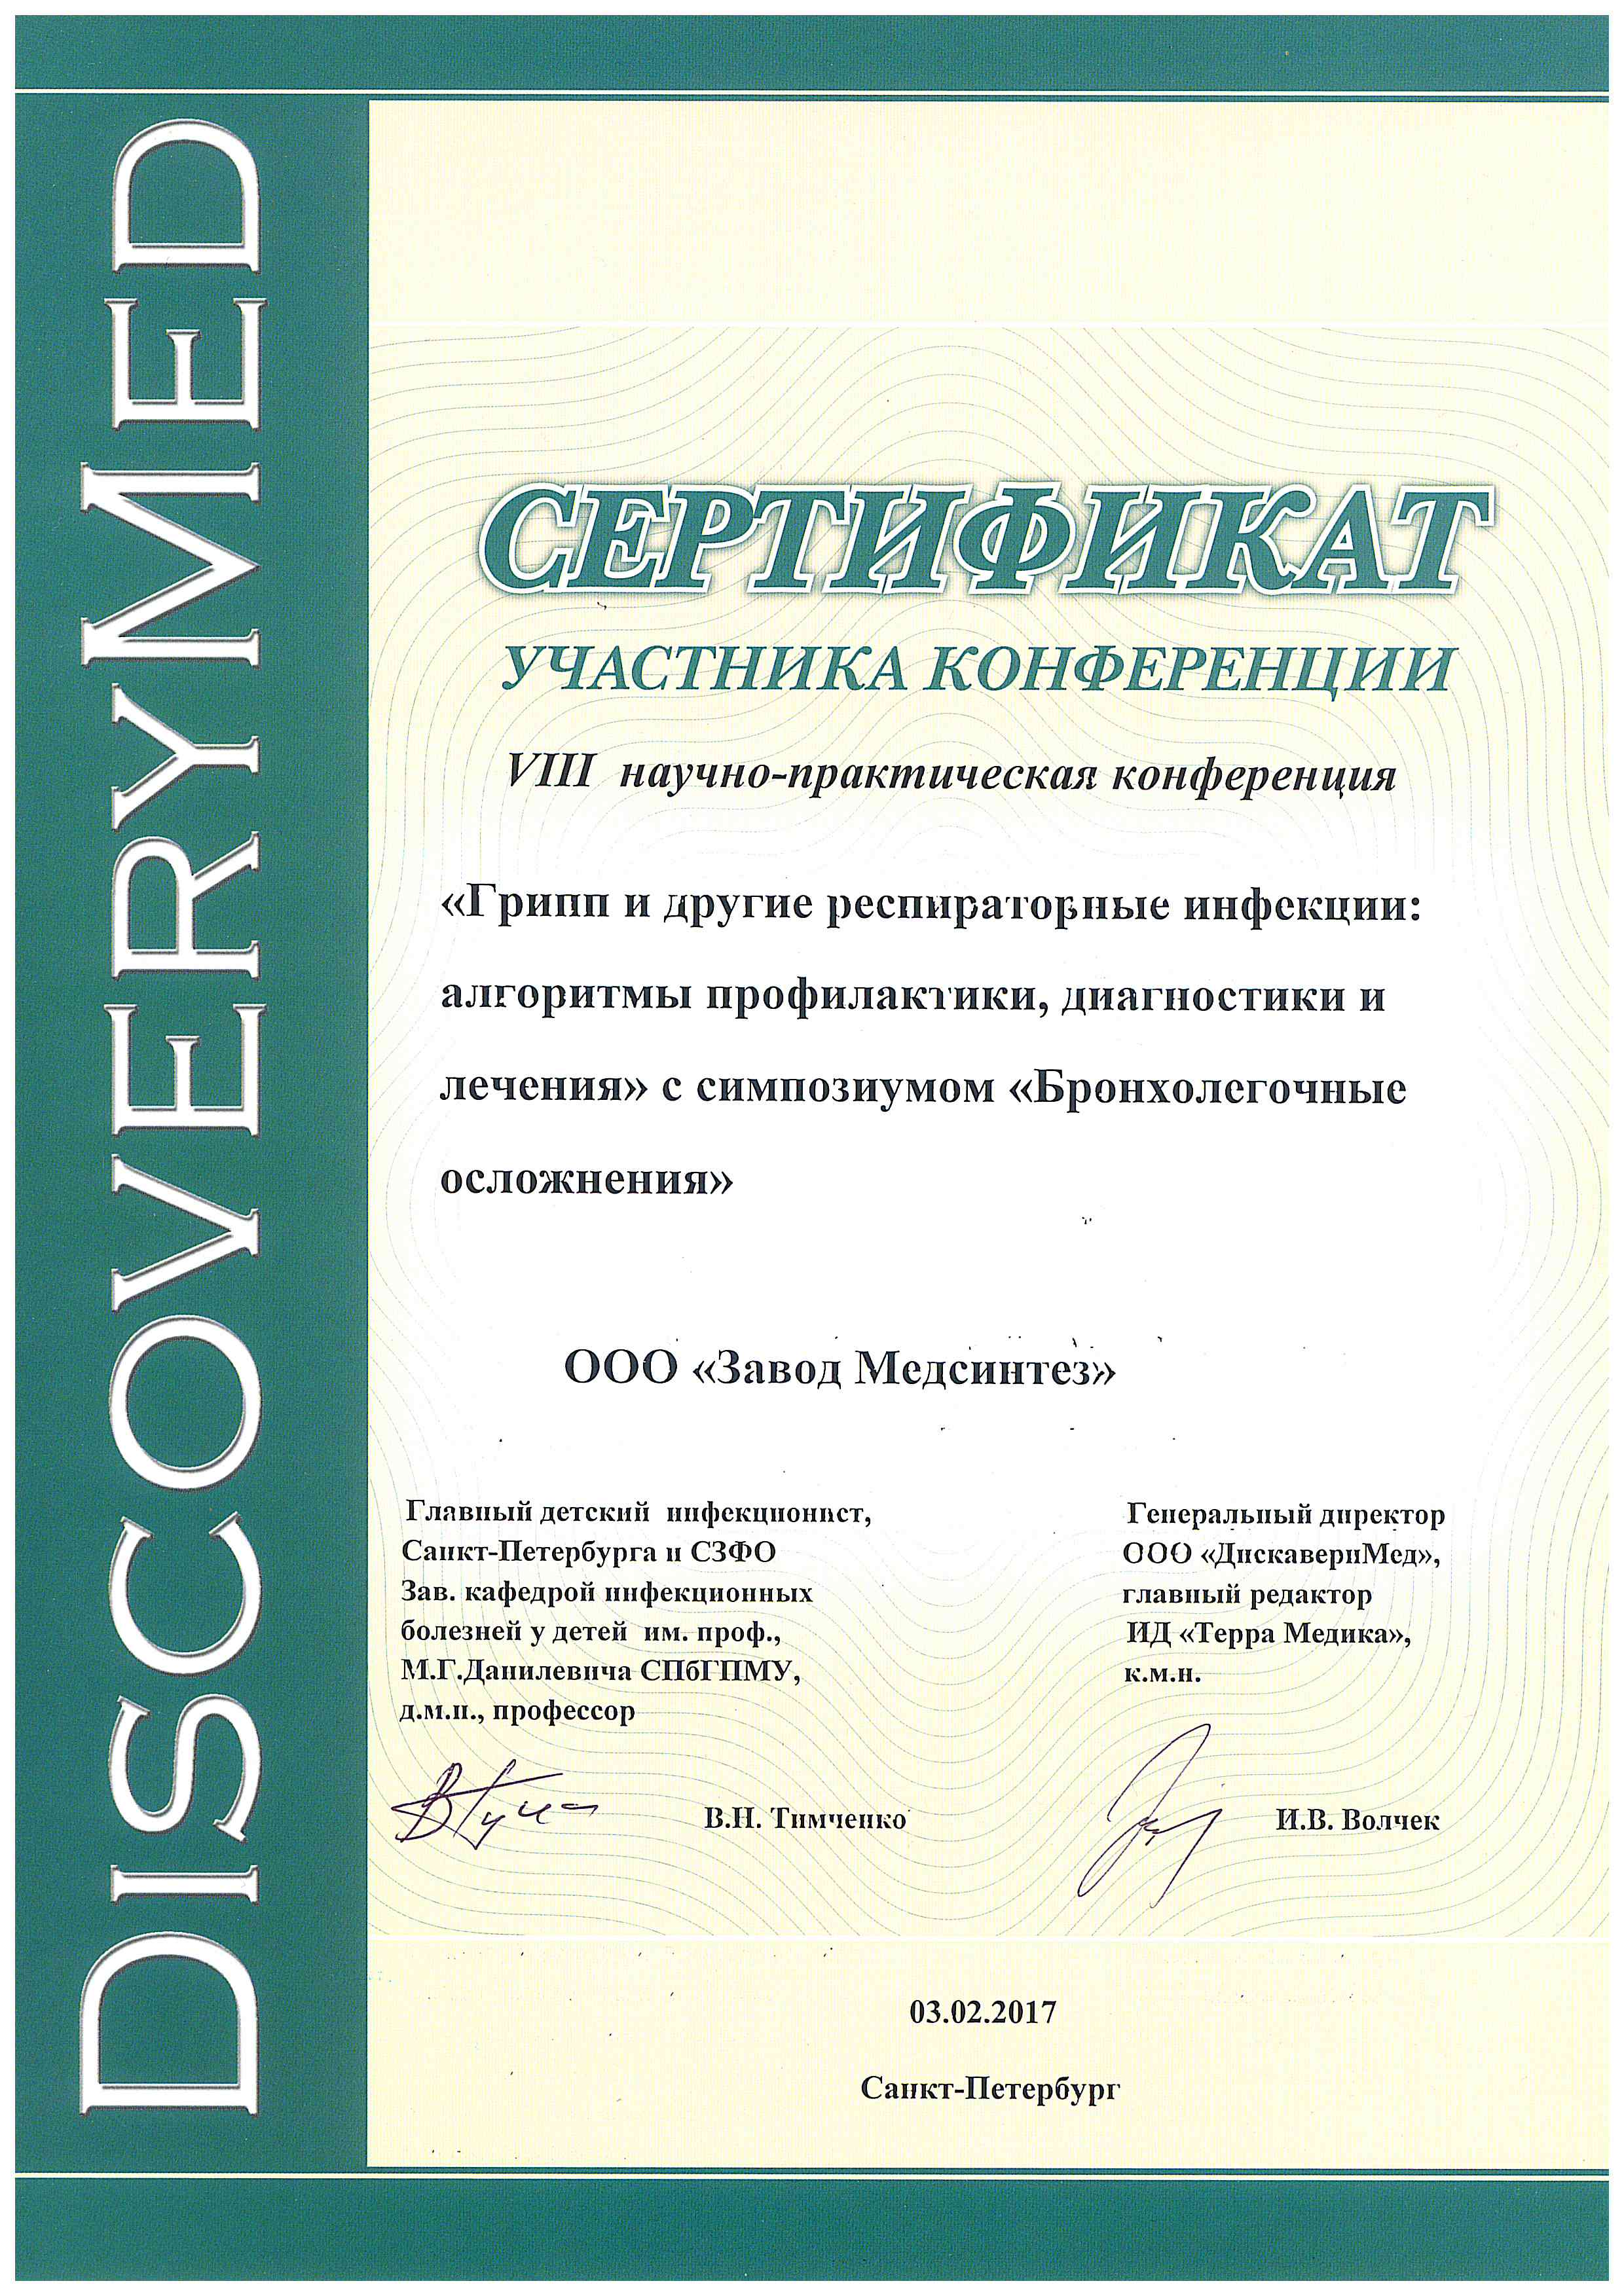 The Certificate of participation in the 8th scientific-practical conference 'Influenza and Other Respiratory Infections: Algorithms for Prevention, Diagnosing and Treatment' with the Bronchopulmonary Complications symposium, February 3, 2017, St. Petersburg